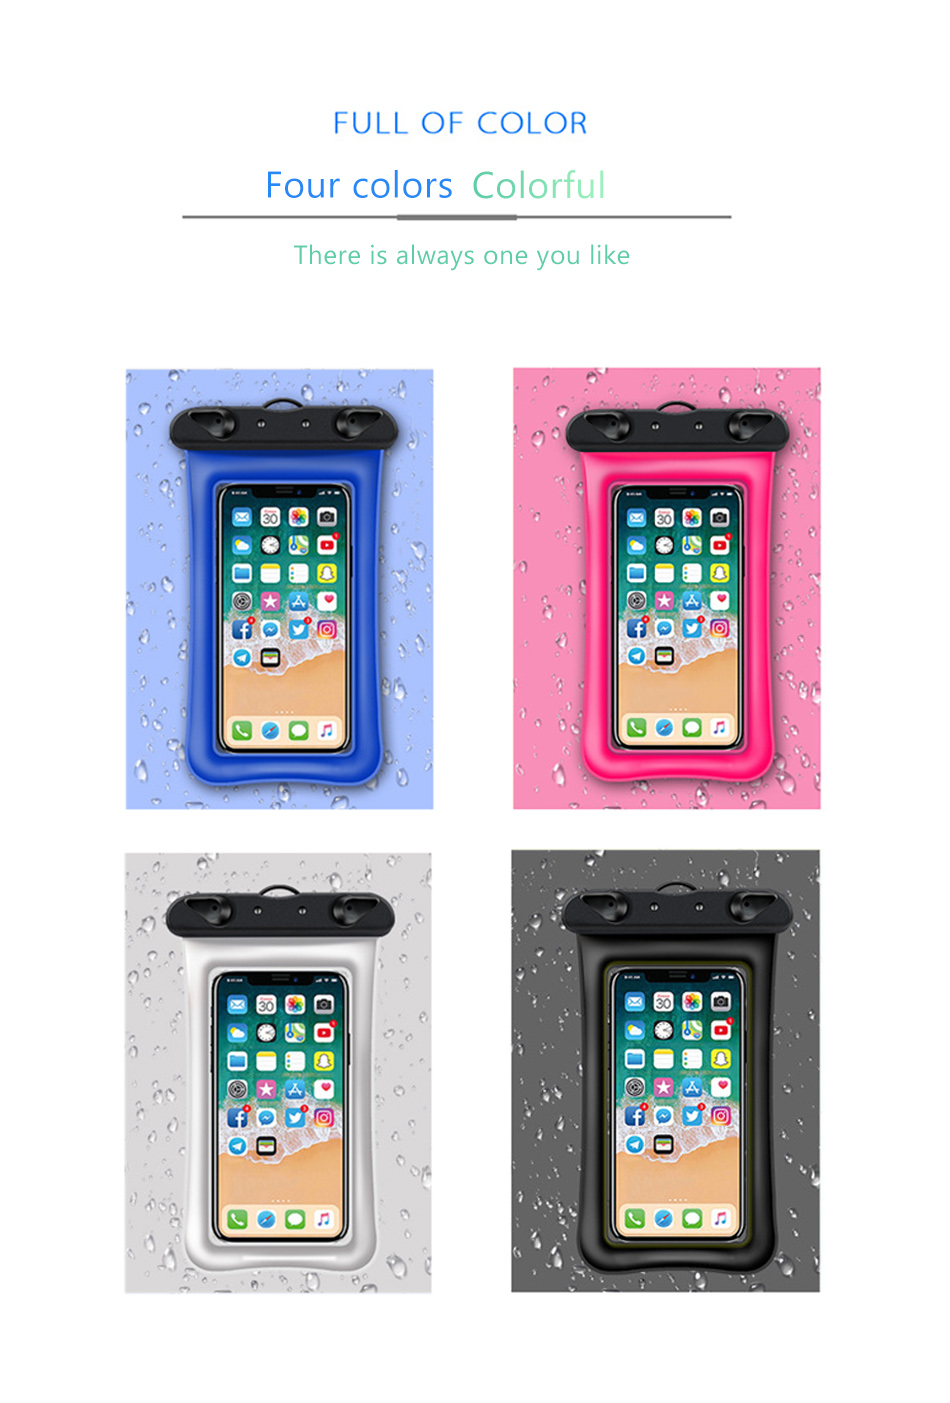 Universal Waterproof Bag 6 inches Pouch Phone Case For iPhone XS XR X 8 7 6 Plus Cover Cases For Samsung S8 S9 Note 8 (4)